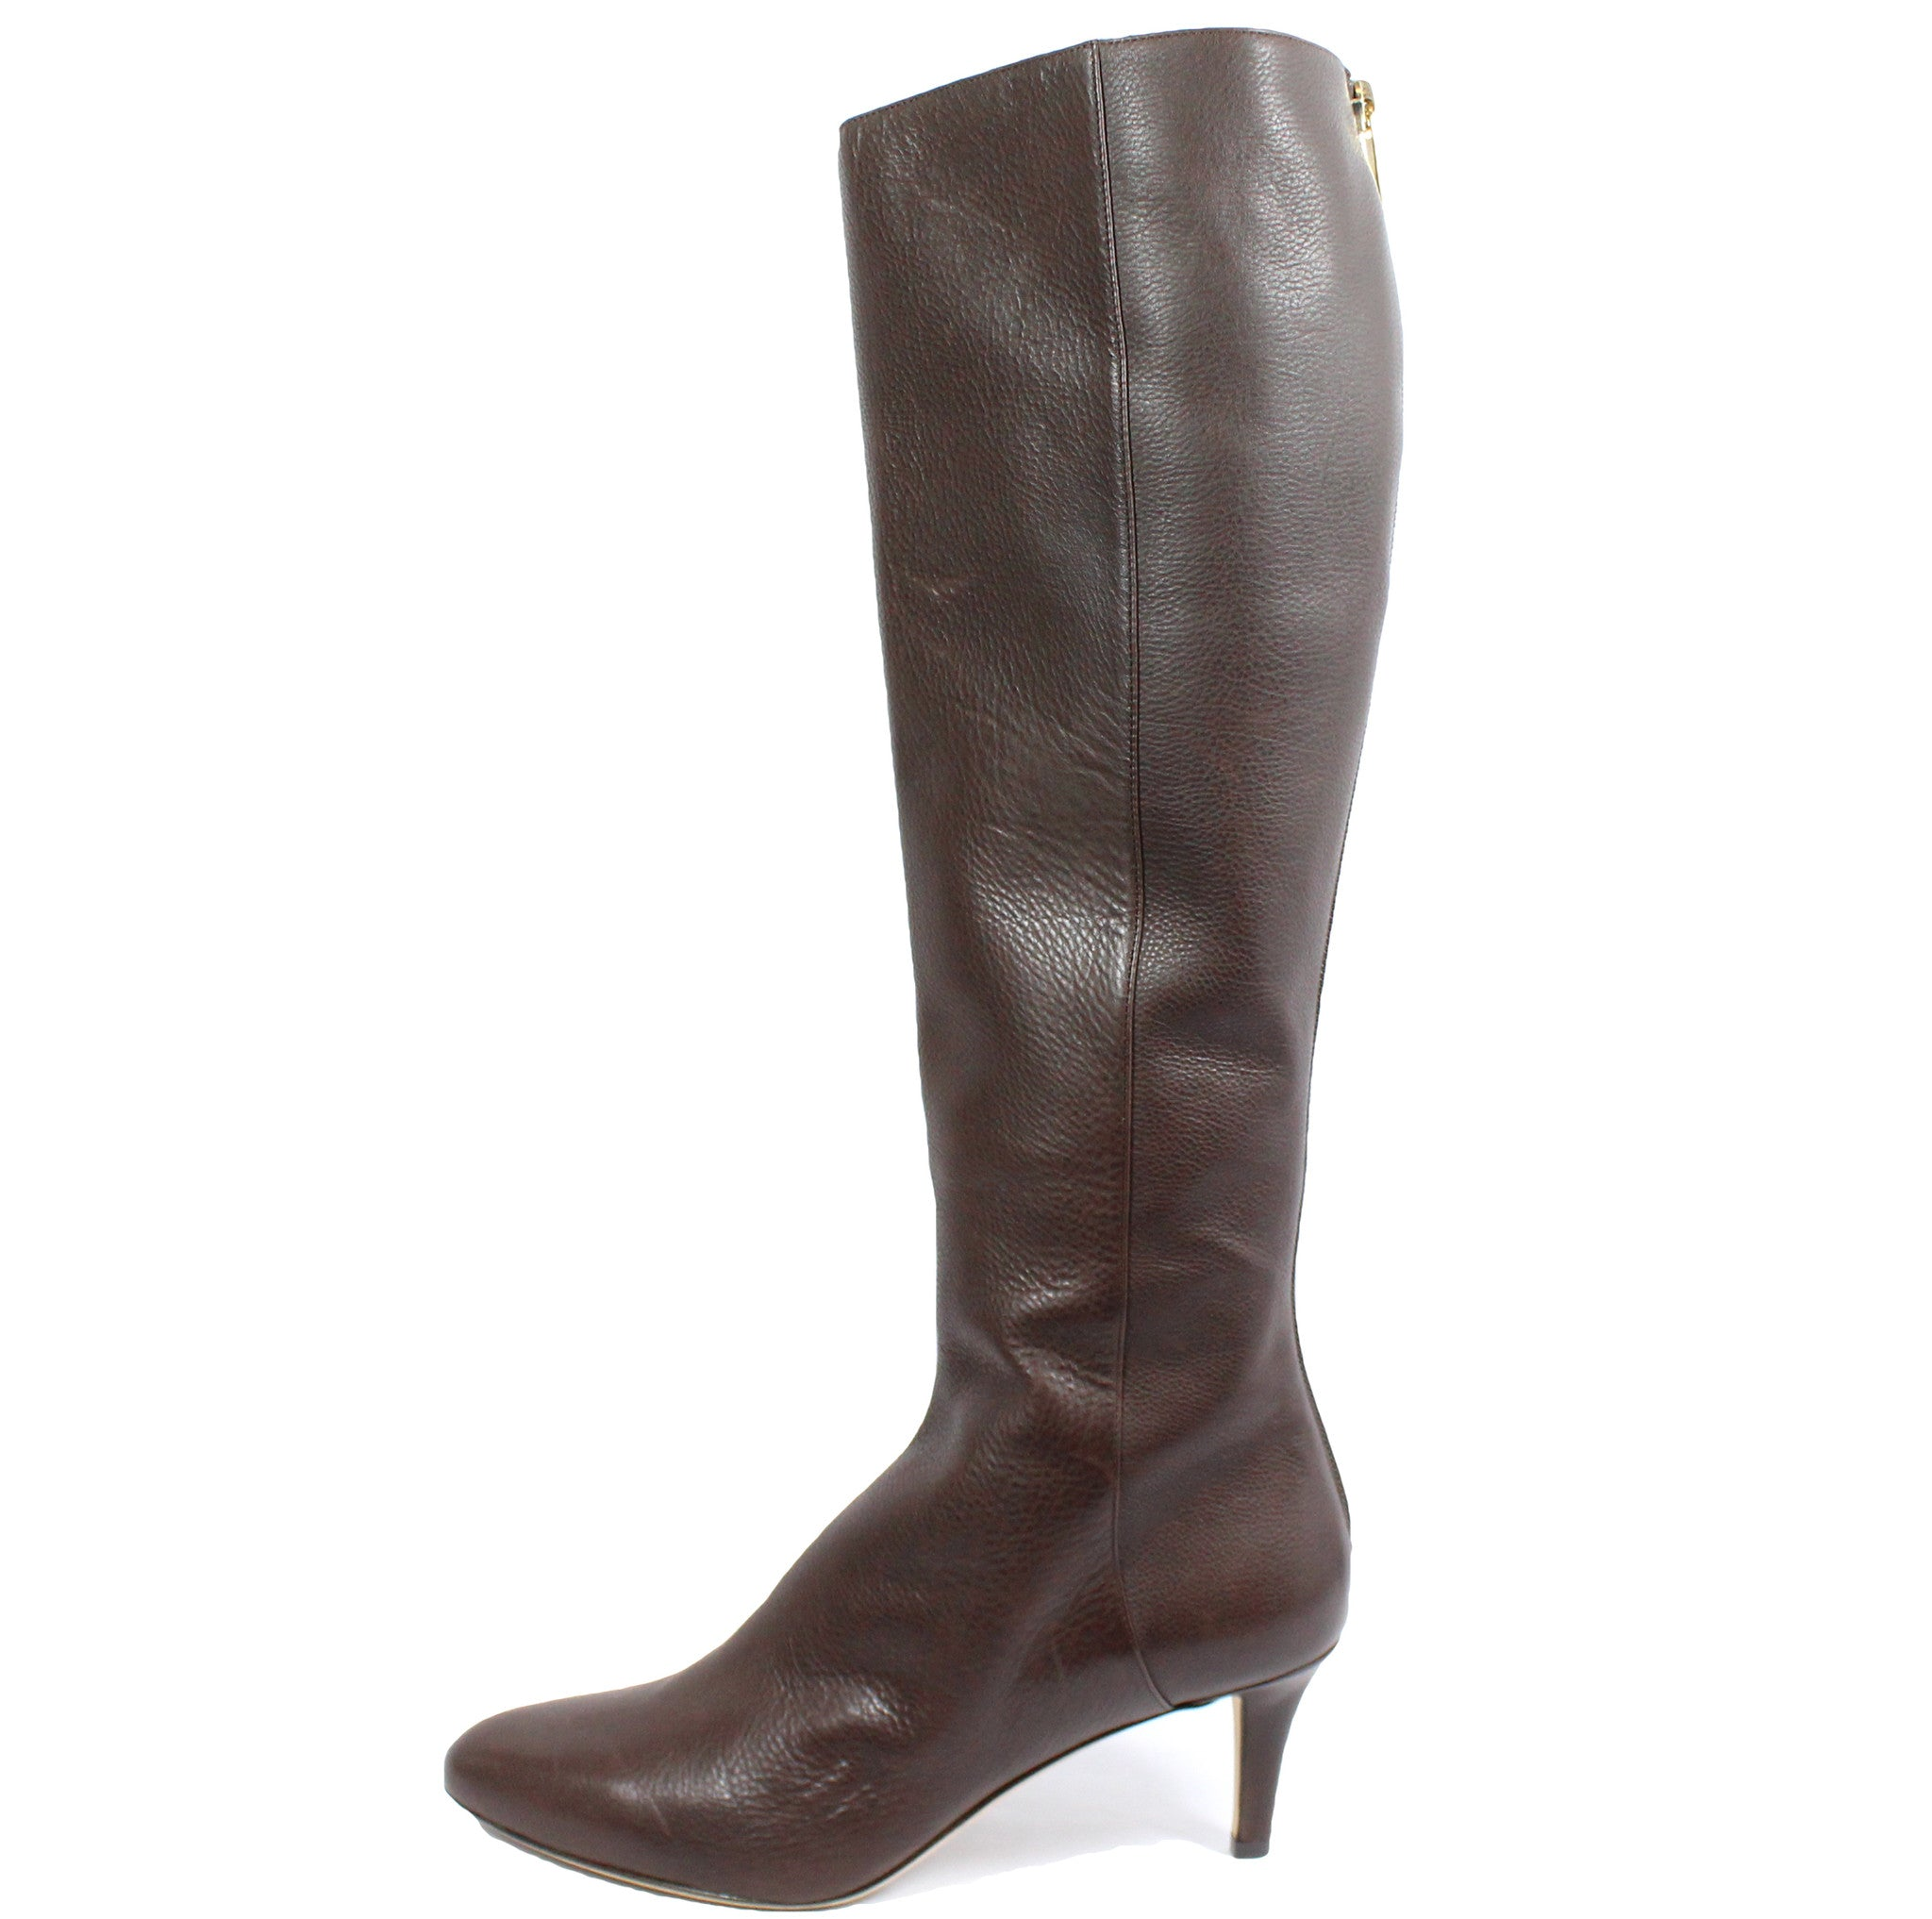 921a8316c7c Jimmy Choo Brown Leather Boots (Size 37) - Encore Consignment - 1